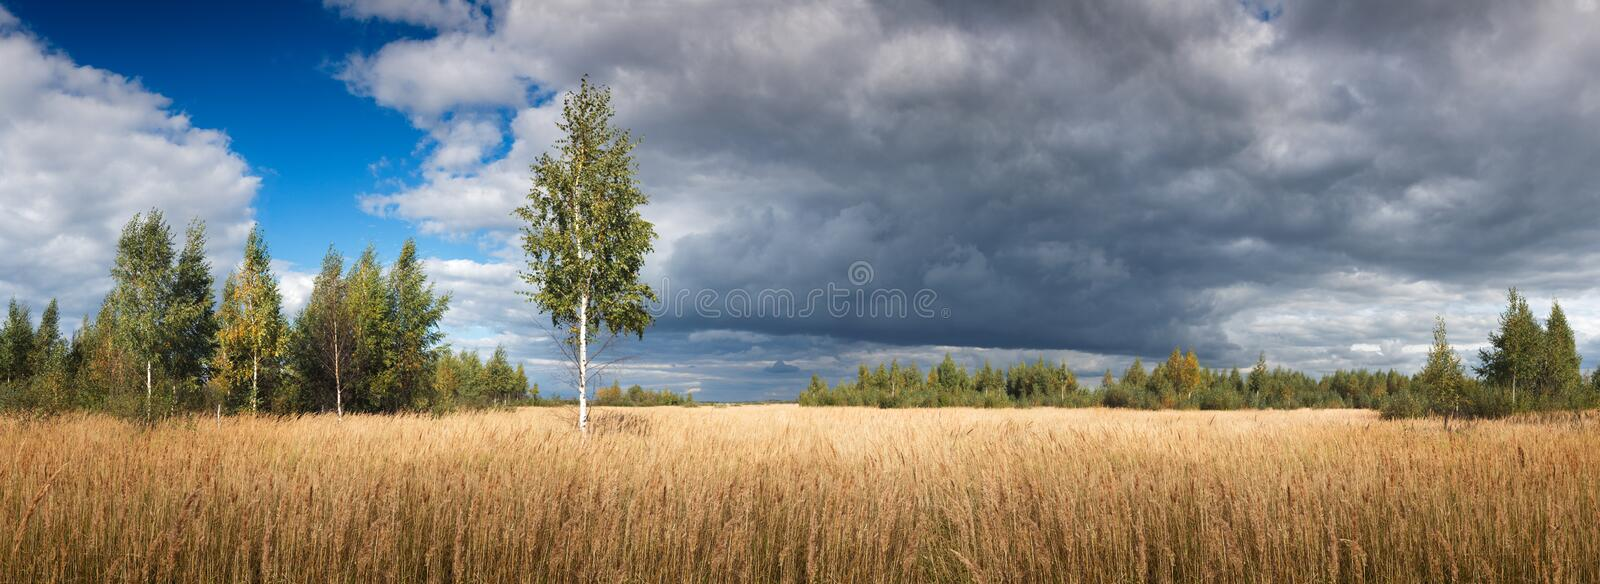 Landscape view with wide bright yellow wild field with high grass with a single tree forest Dramatic blue sky with white dark. Landscape view with wide bright stock photos